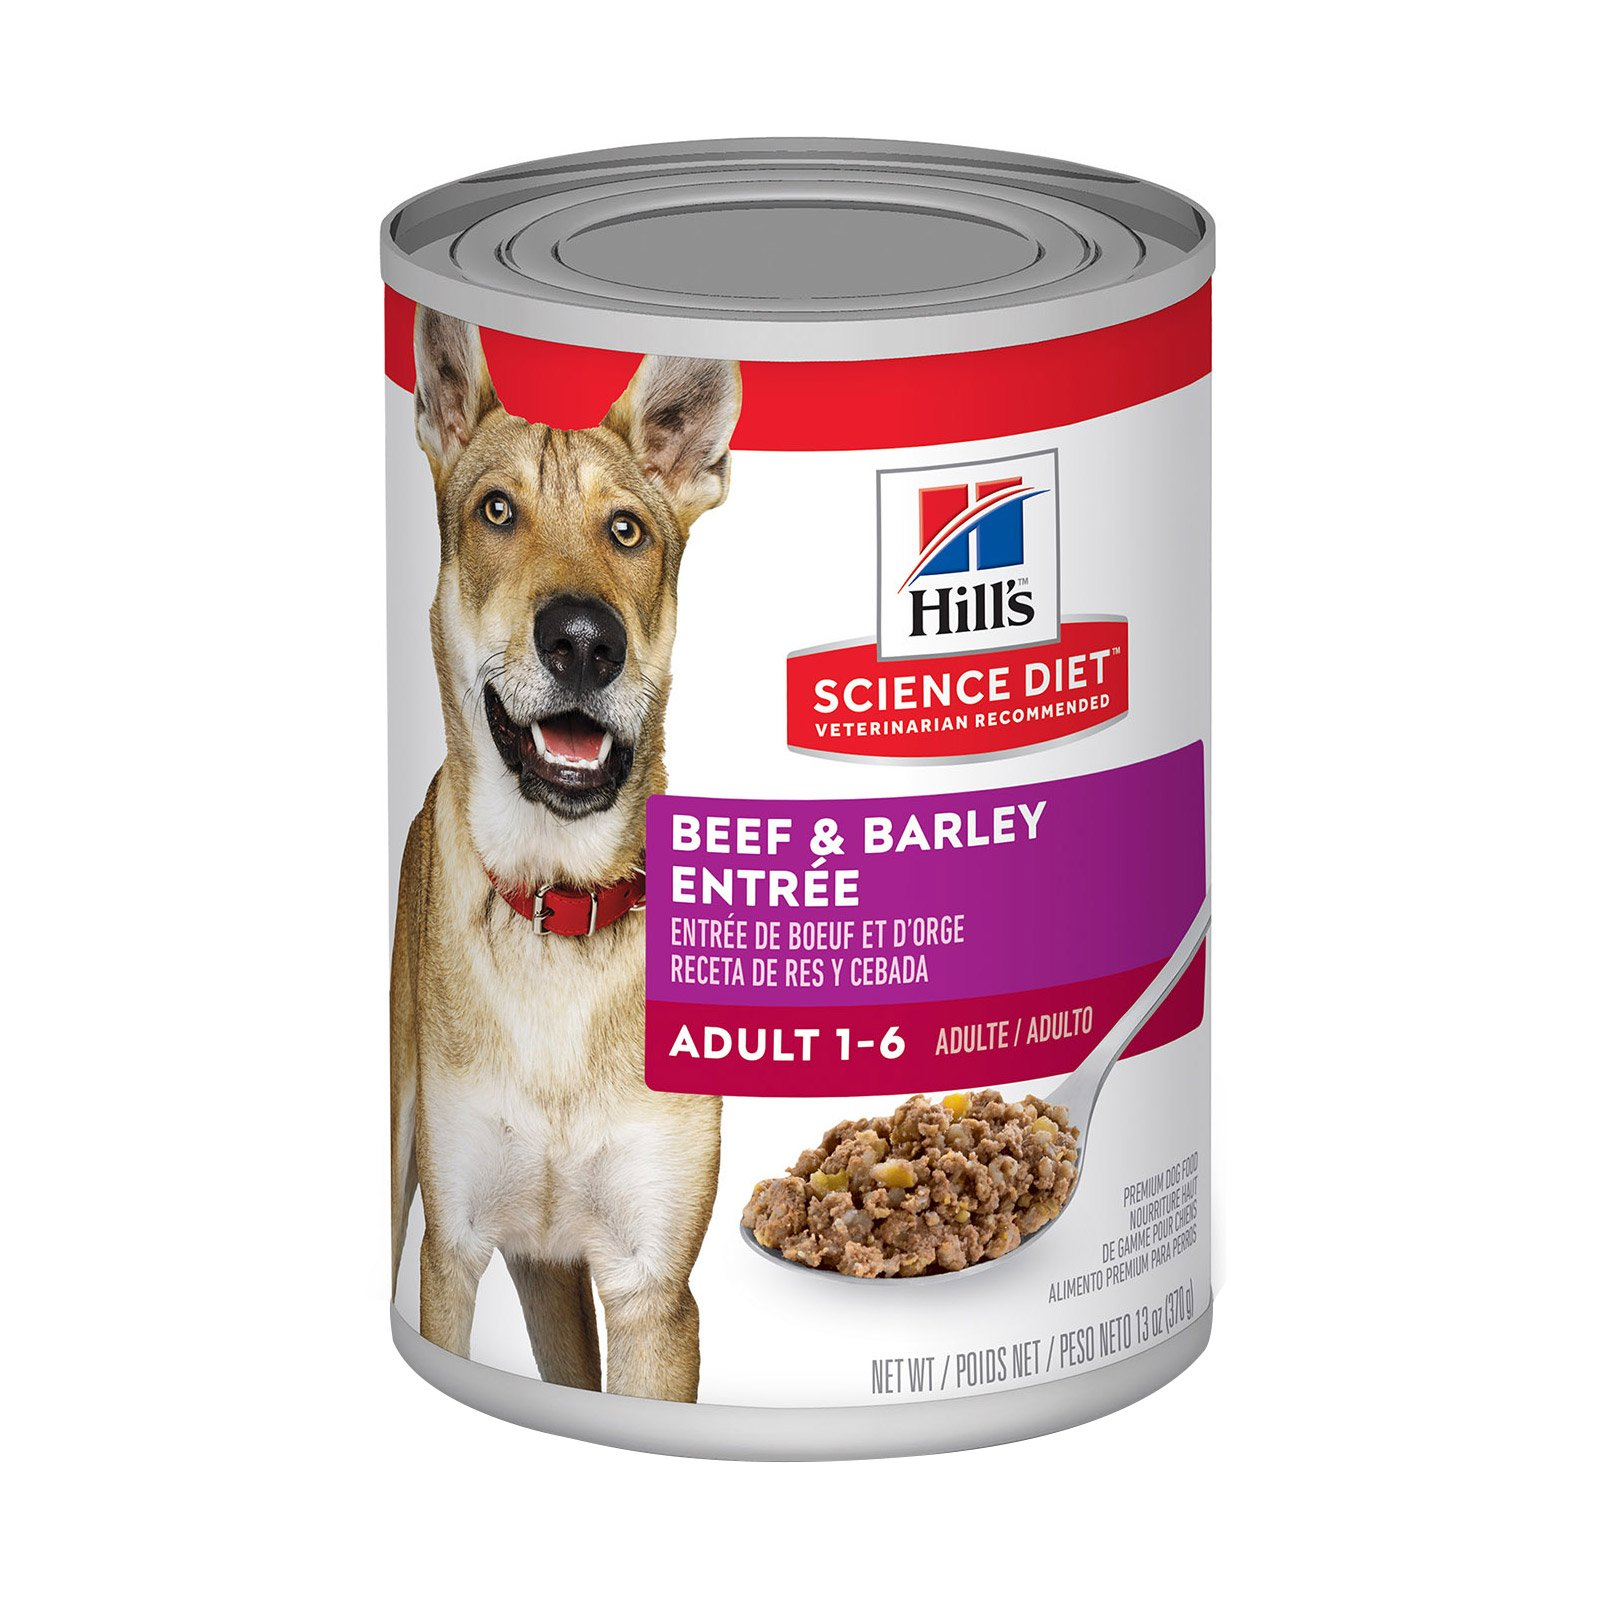 Hills Science Diet Adult Beef & Barley Entrée Canned Dog Food   370 gm